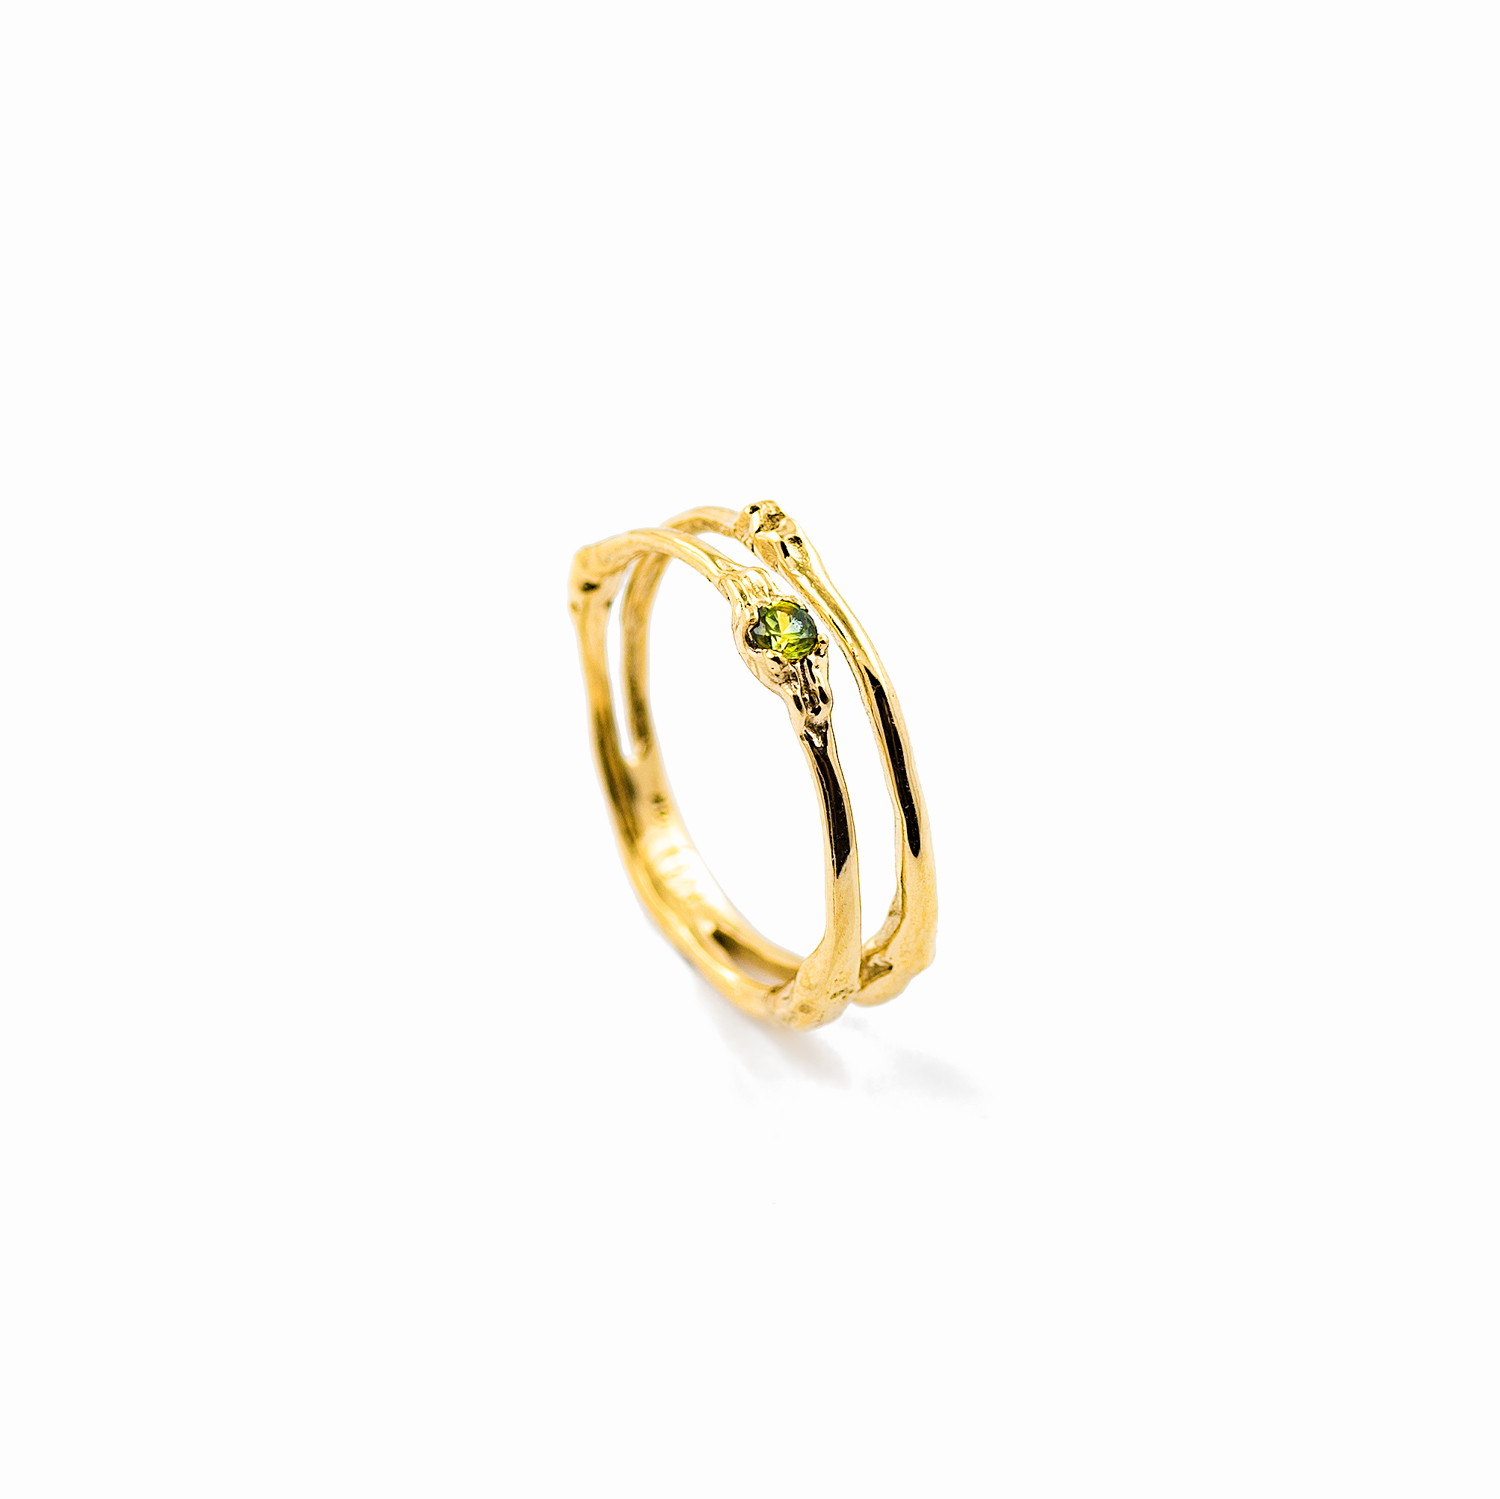 Towers Double Band | Yellow gold, yellow-green Australian sapphire.